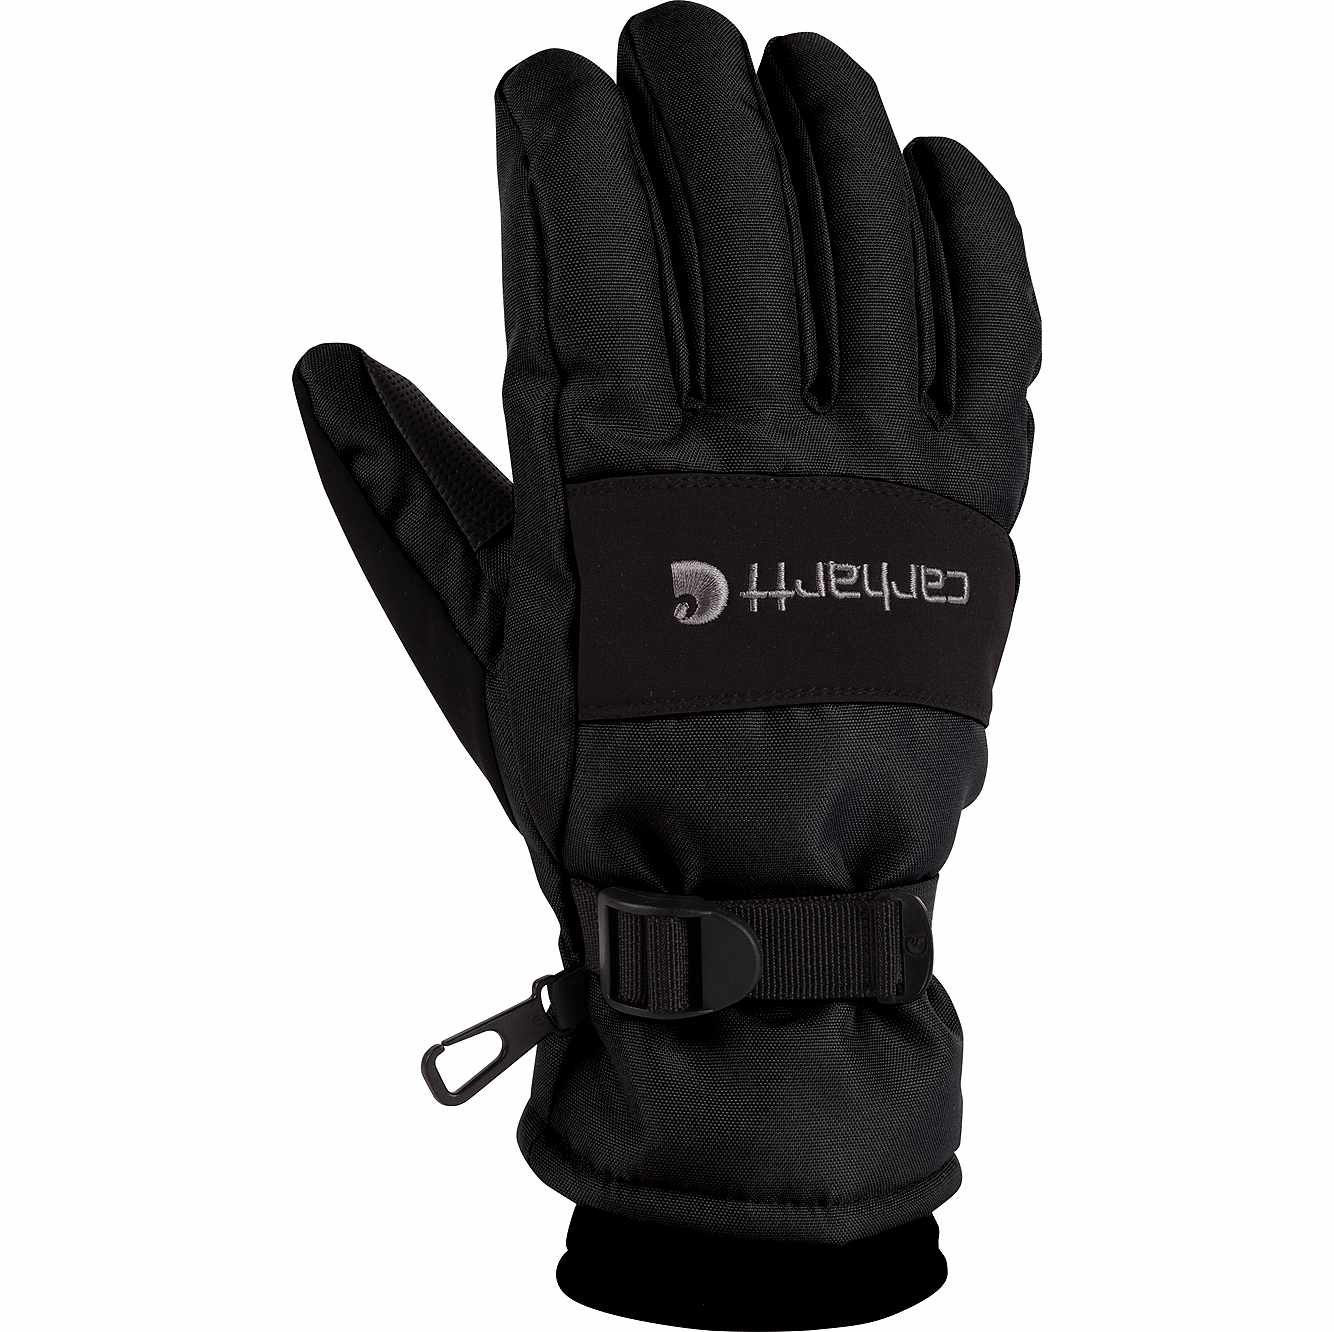 Waterproof Glove